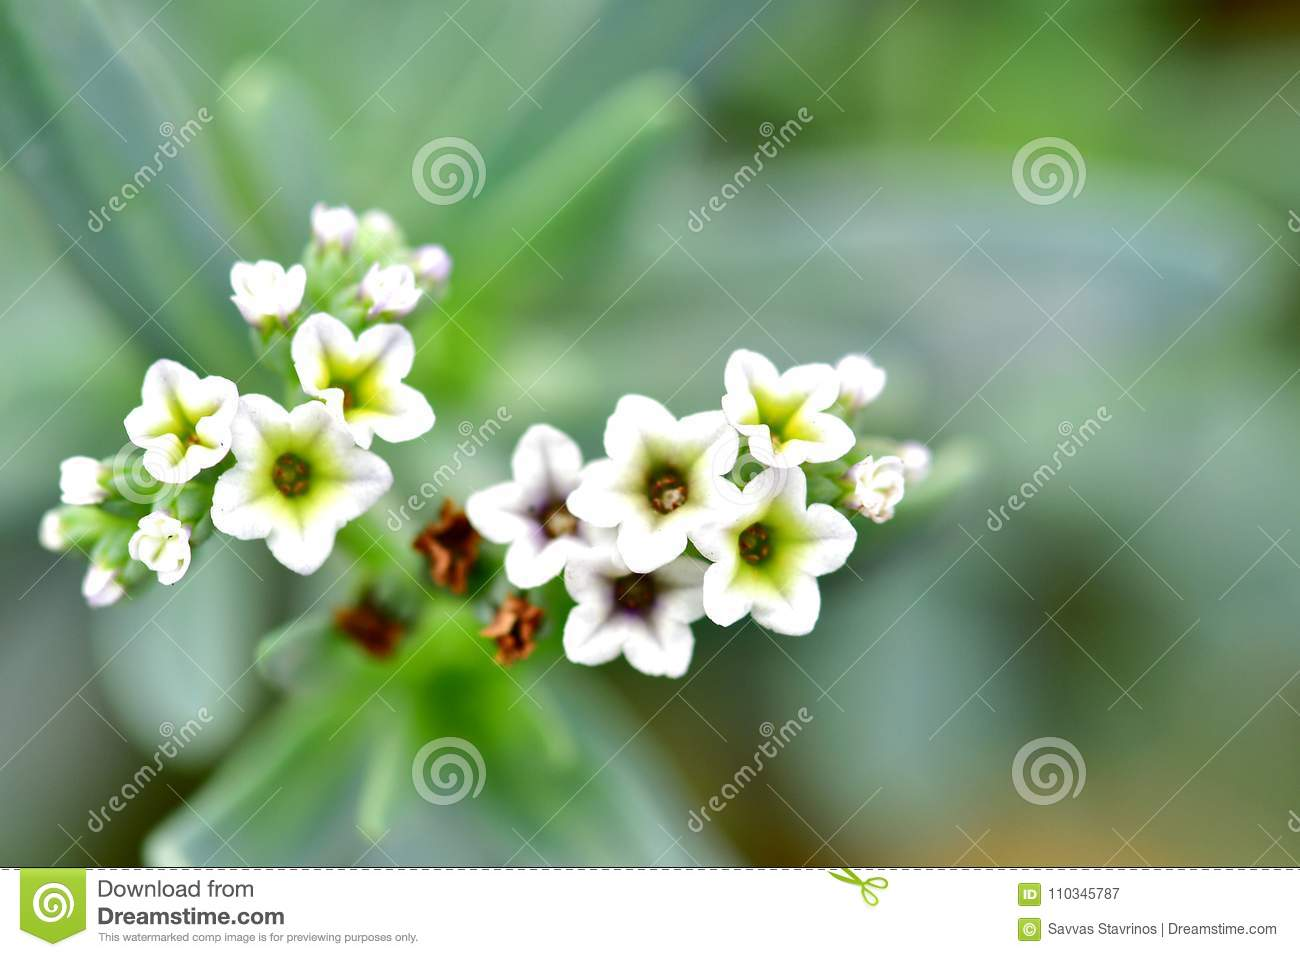 Alyssum Plants In White Color Having 5 Pedals Each One Stock Image